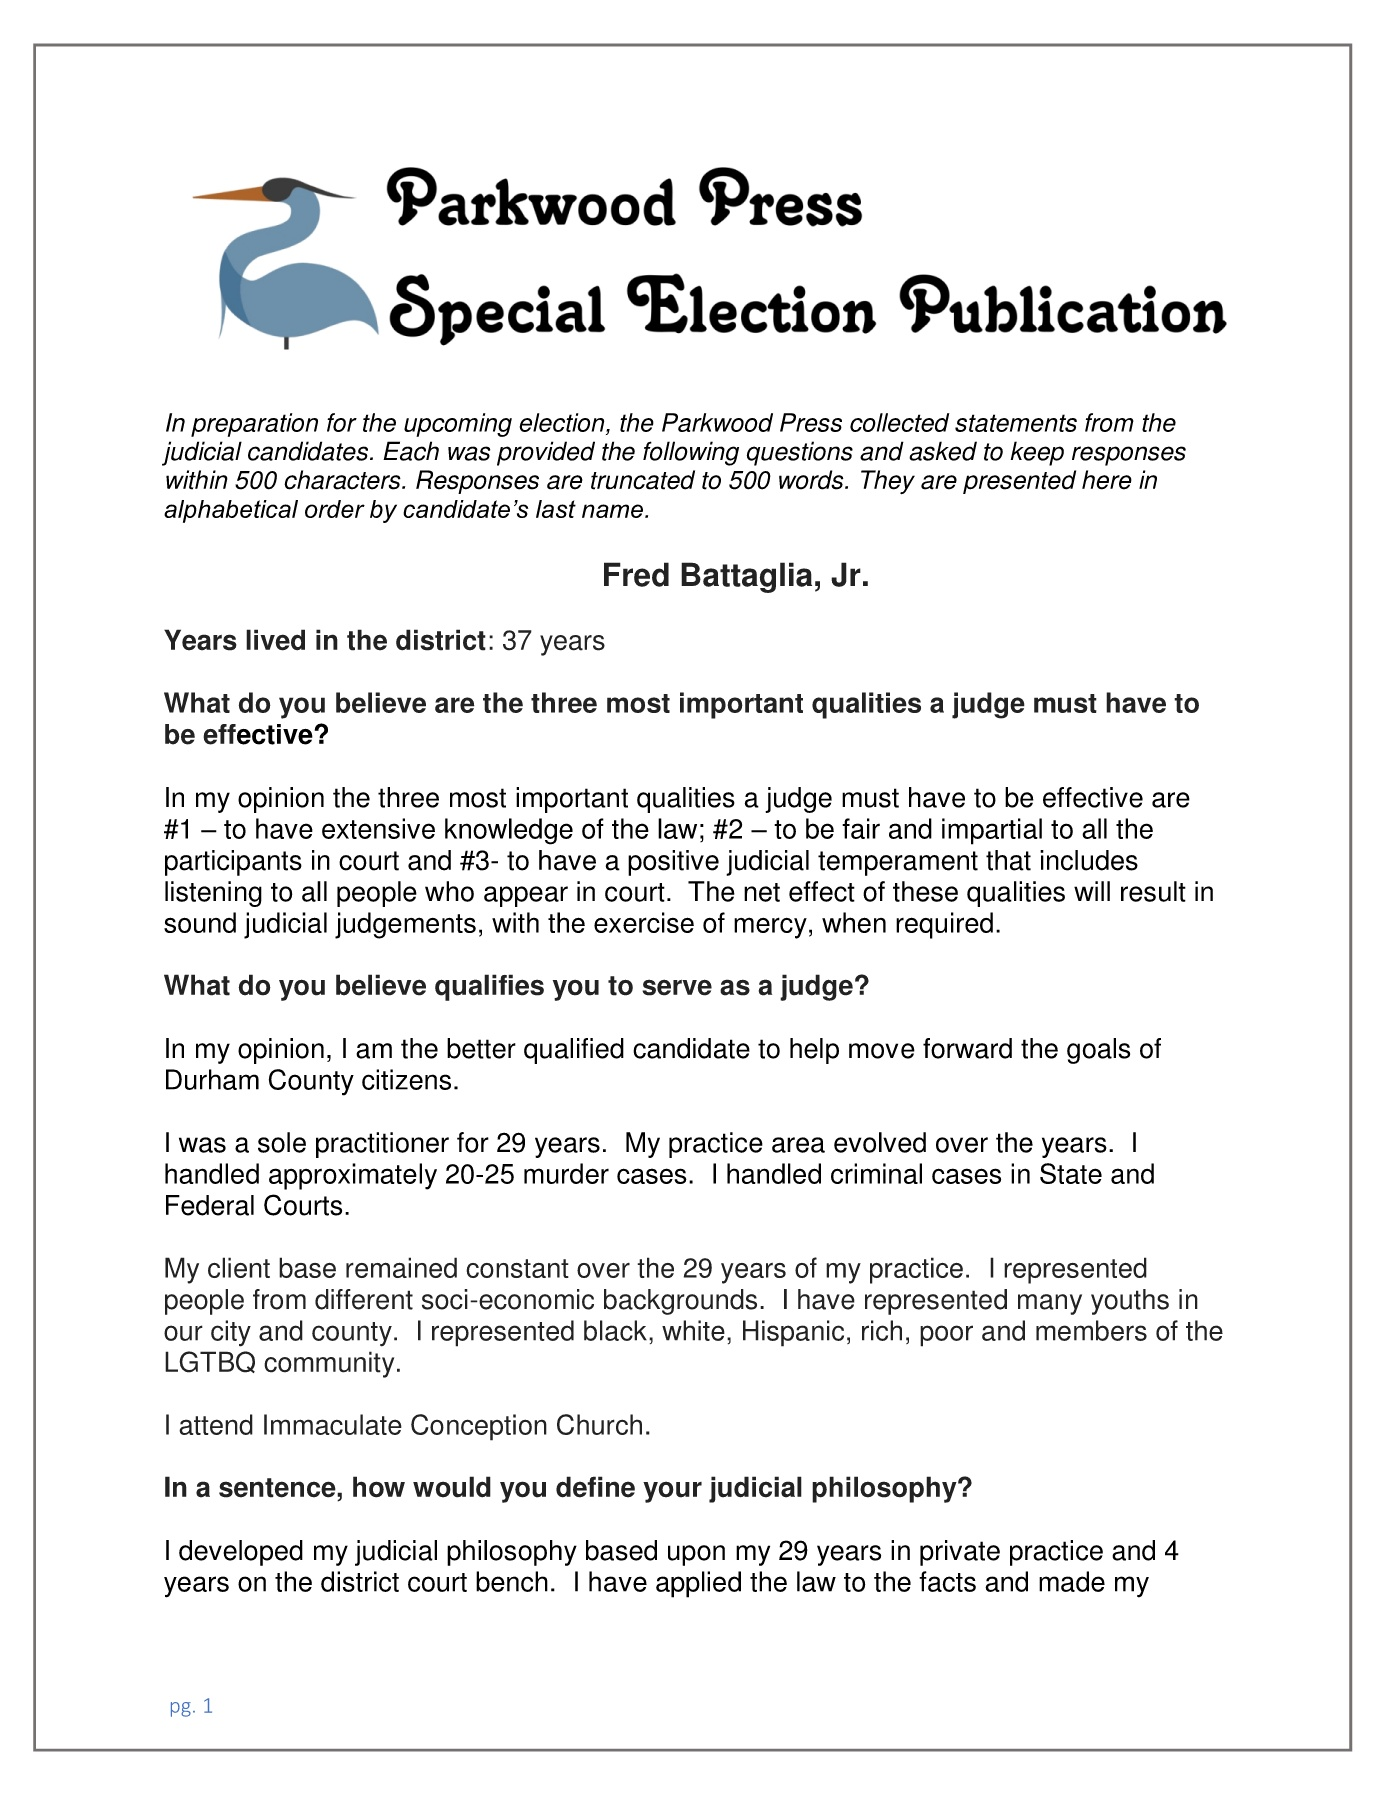 Special Election Publication